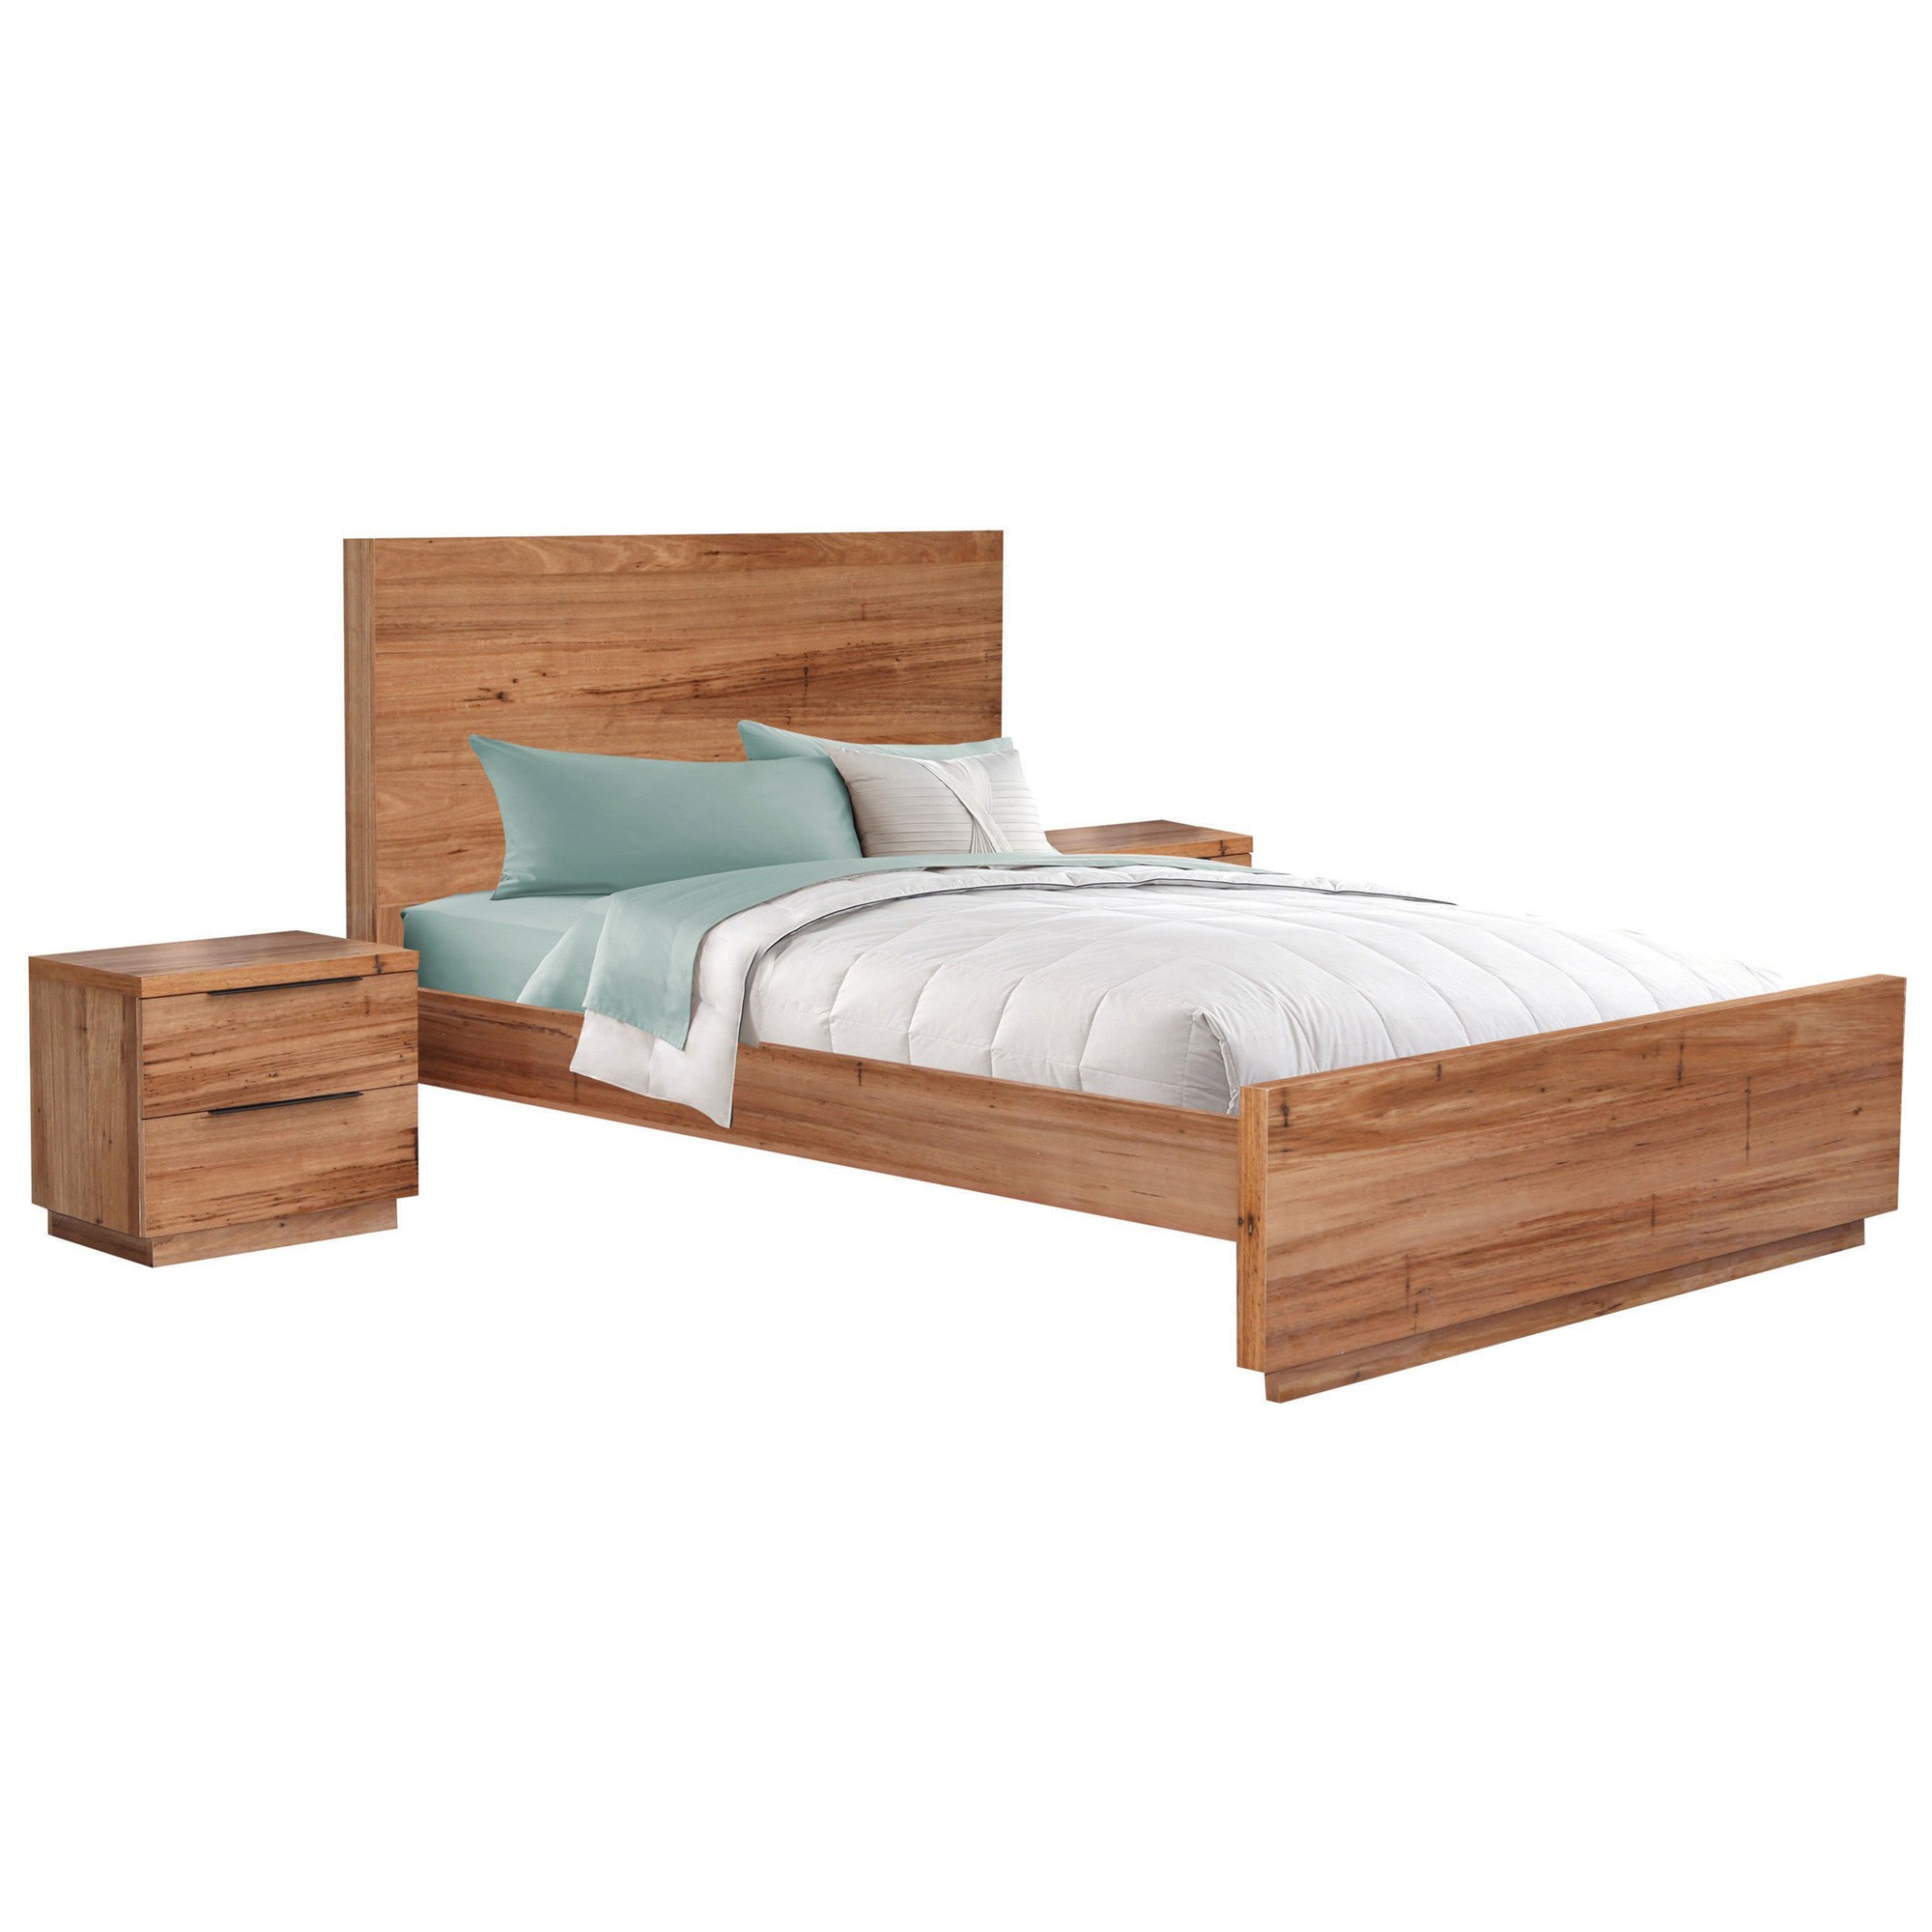 Nelson Wormy Chestnut Timber Bed, Queen